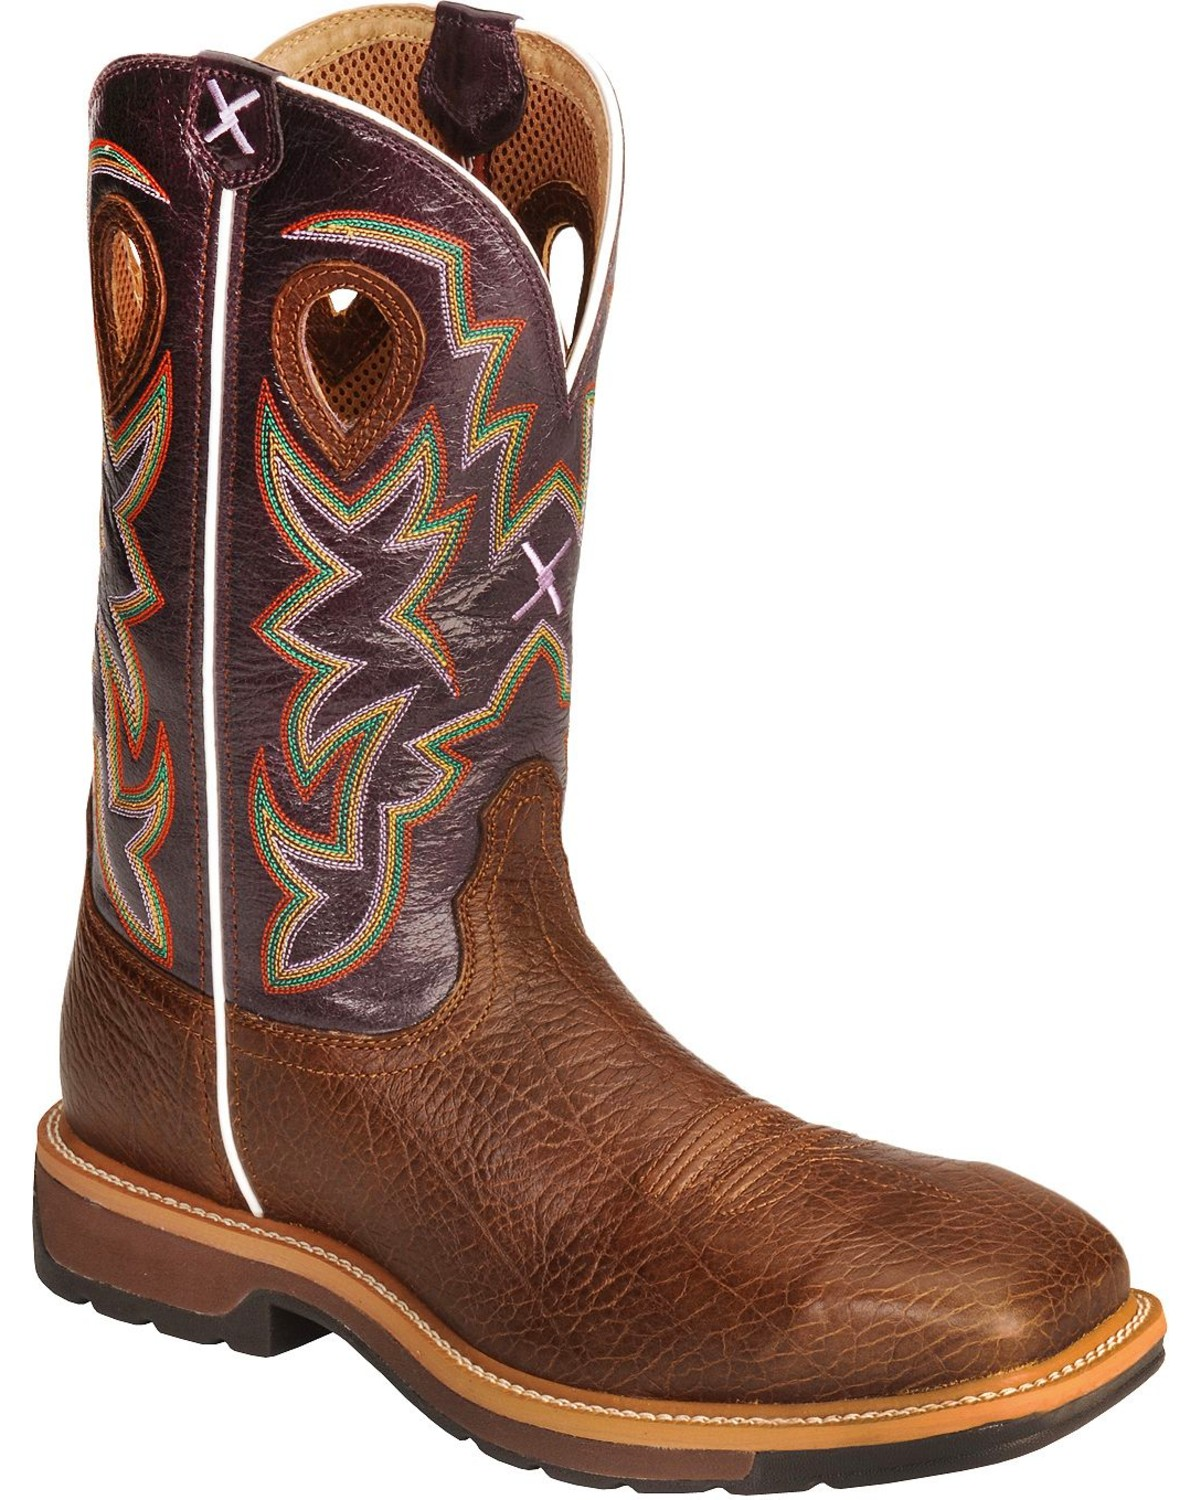 Twisted X Lite Pull On Work Boots Composite Toe Boot Barn